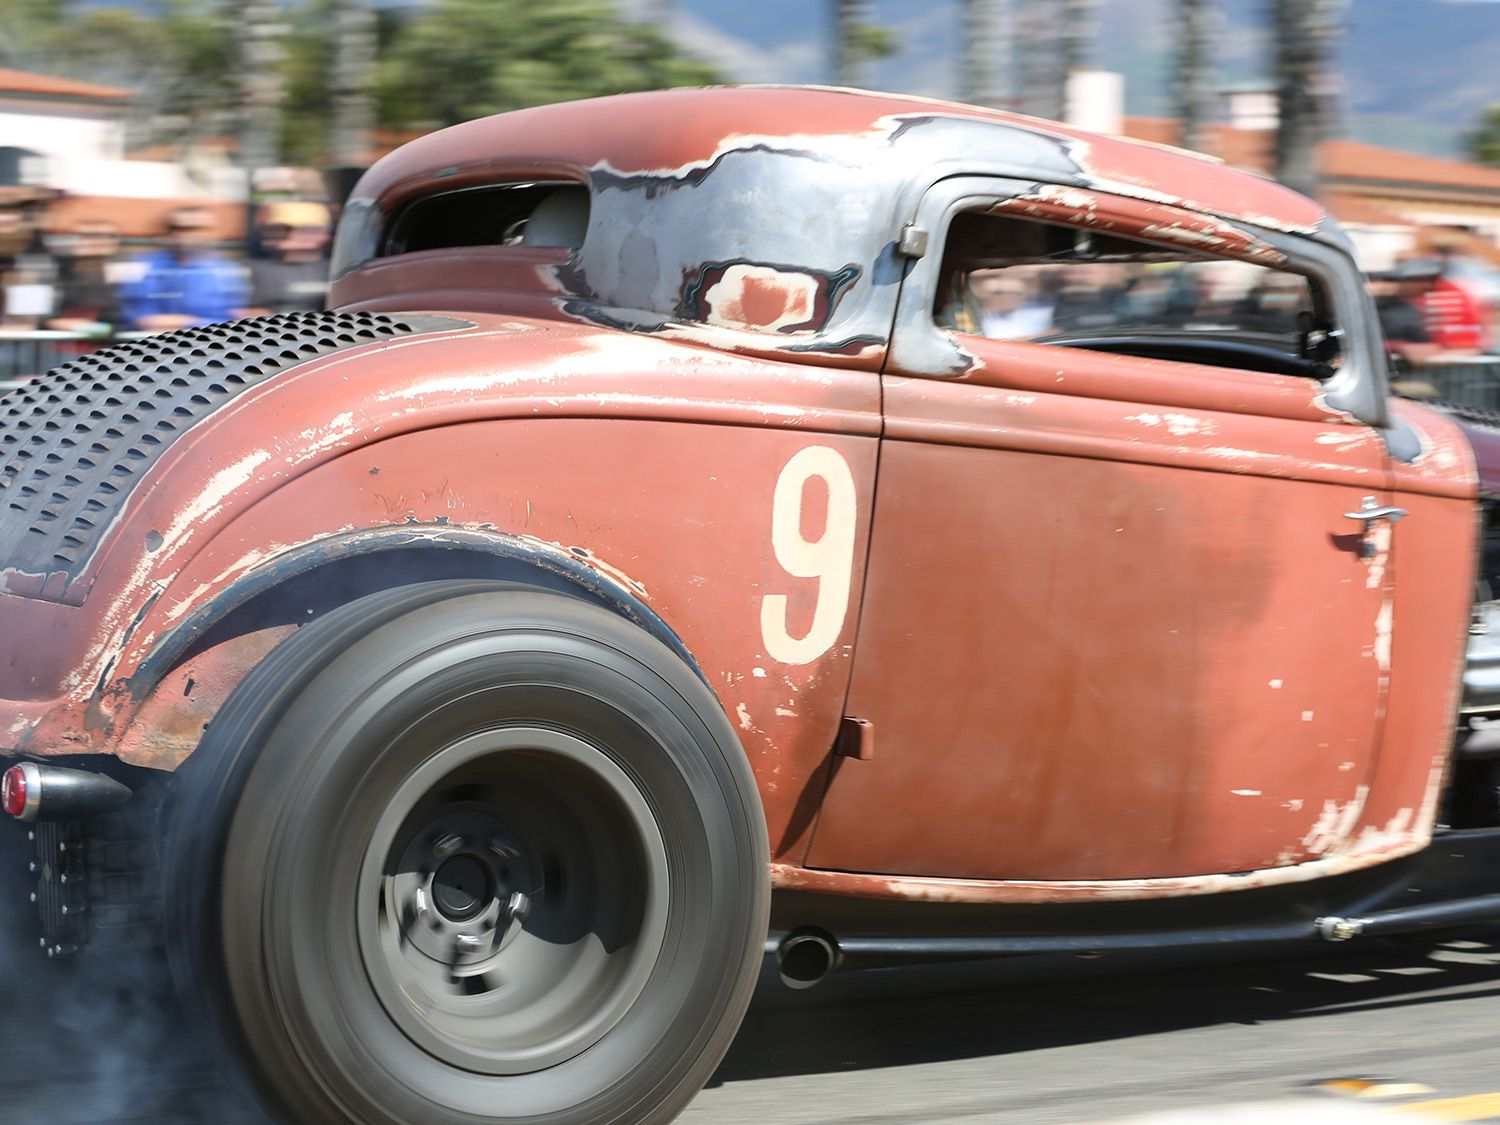 The cars may be pre-1953 but they can still burn some rubber.